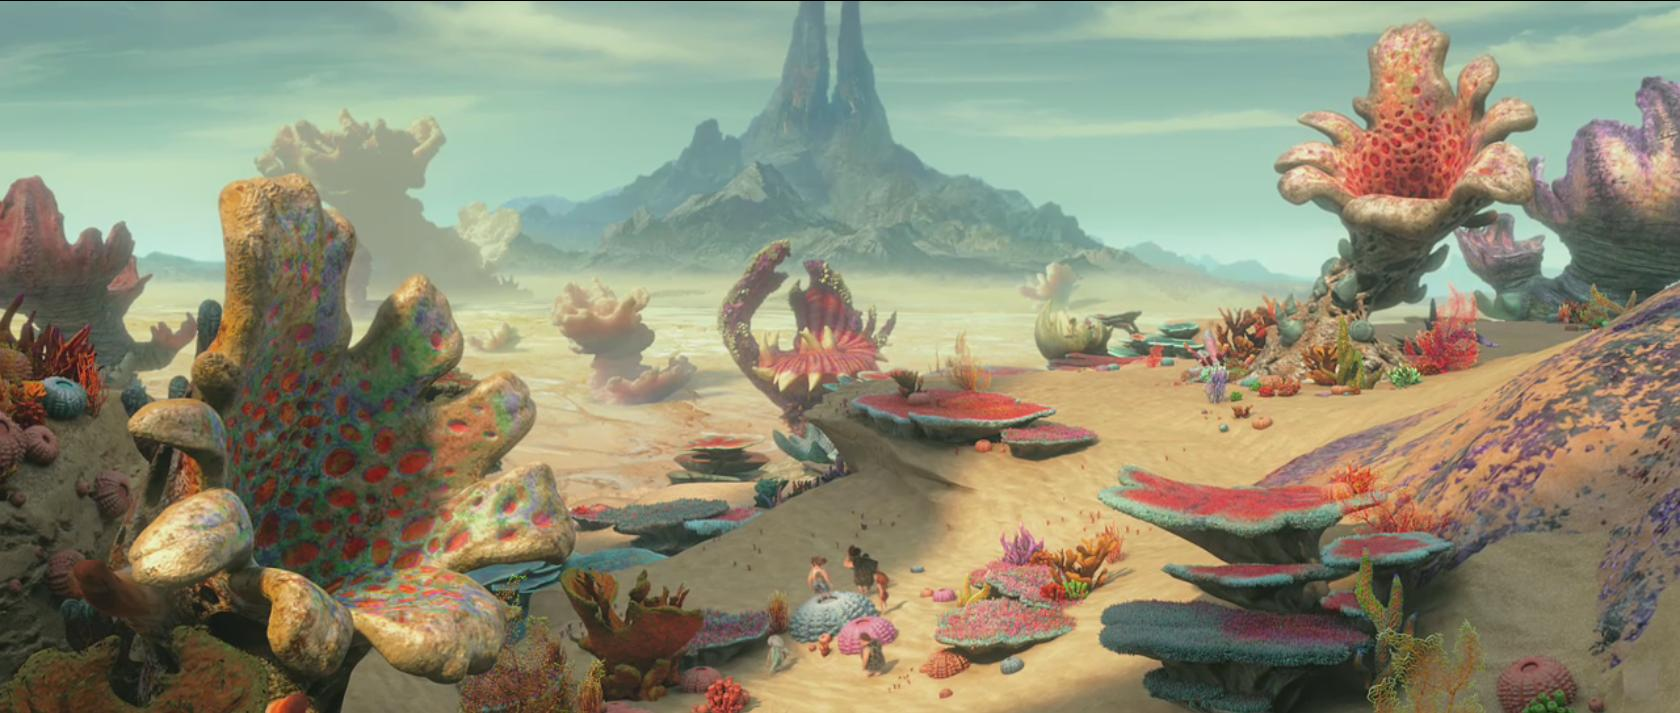 the croods pict